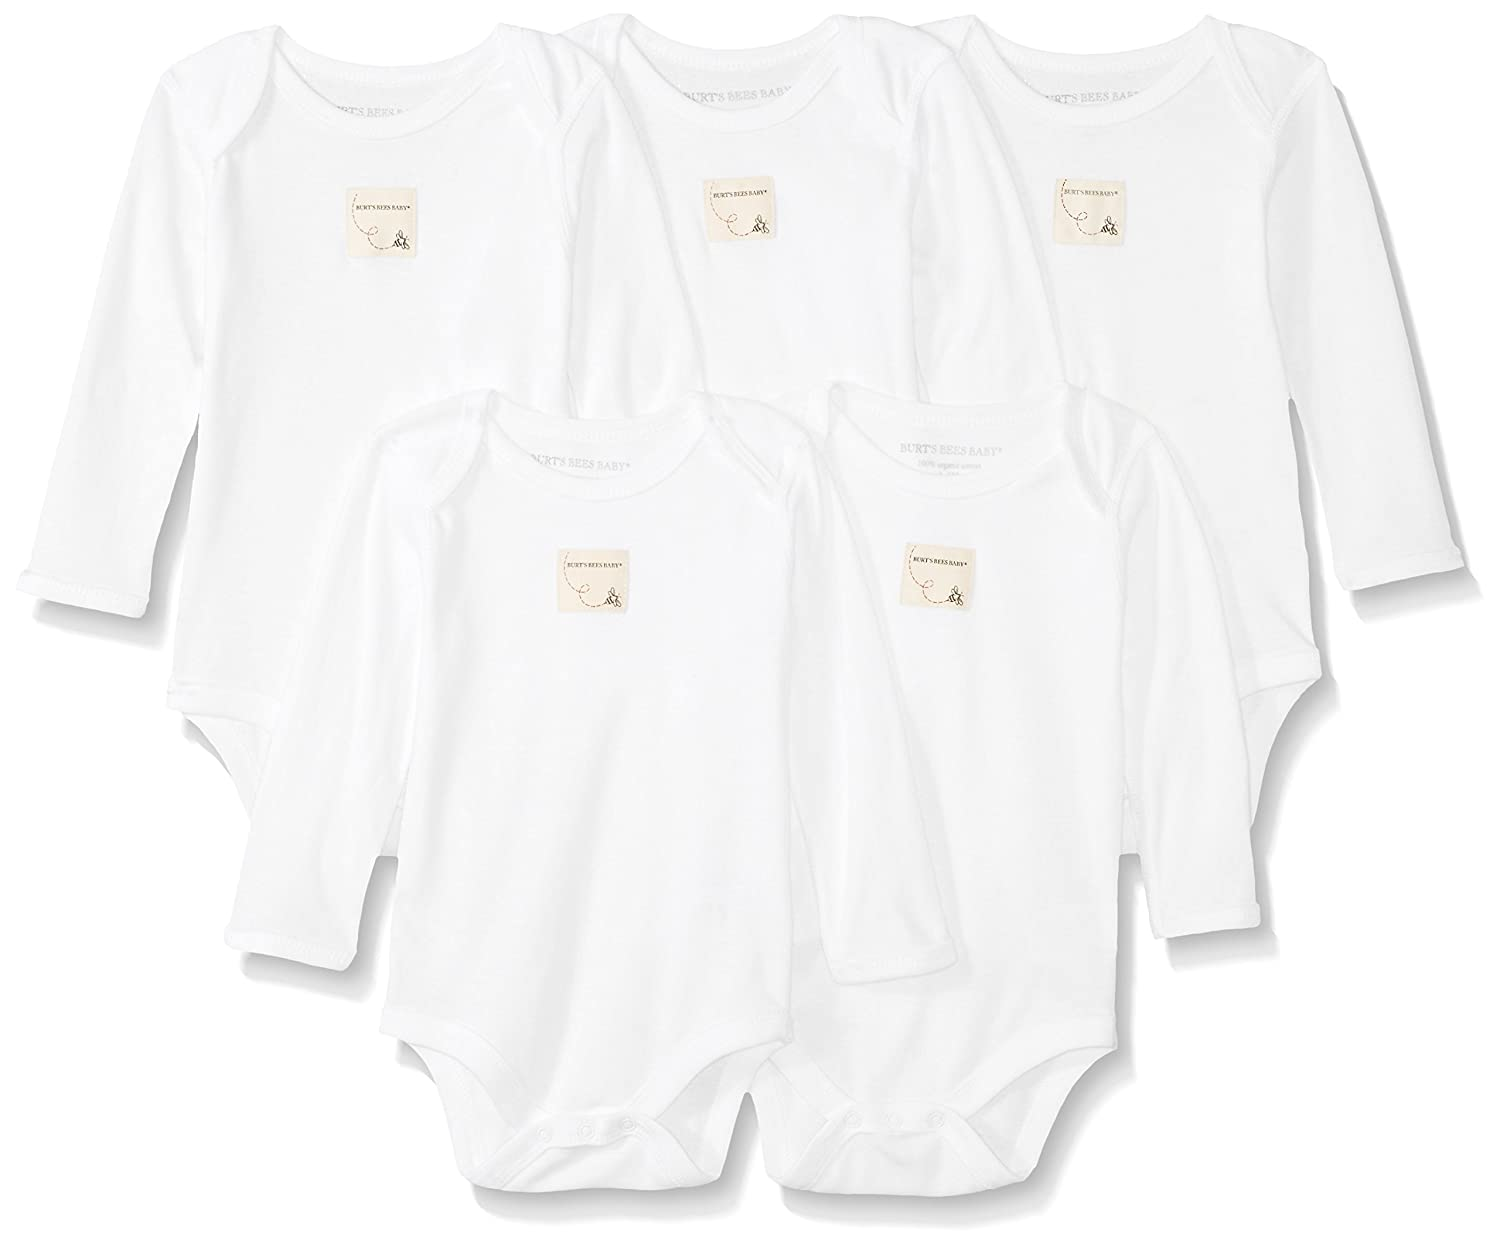 Burt's Bees Baby Boys' Long Sleeve Bodysuits, Set of 5, 100% Organic Cotton,